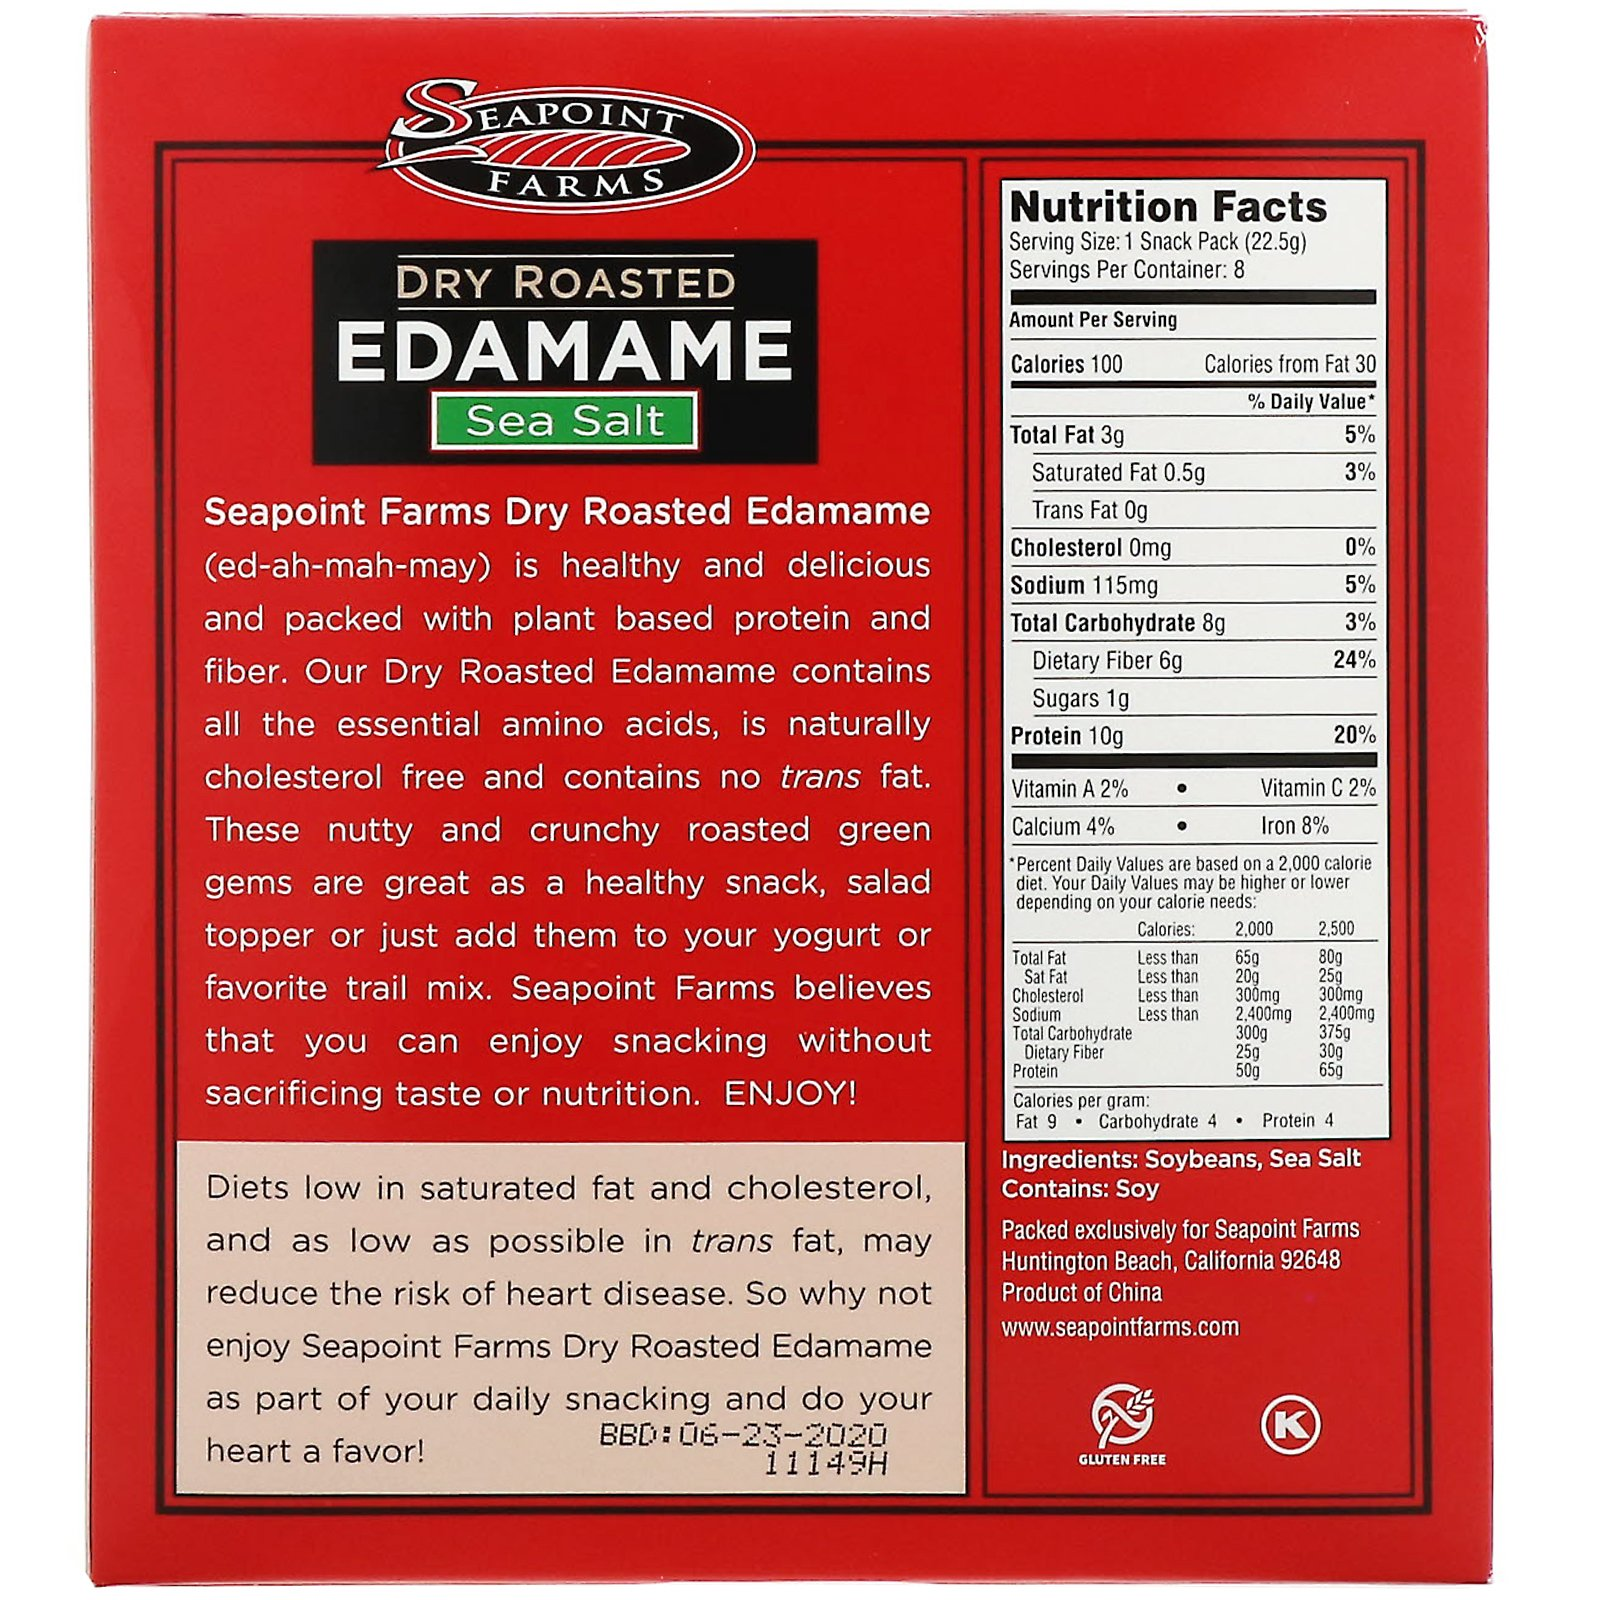 Seapoint Farms, Dry Roasted Edamame